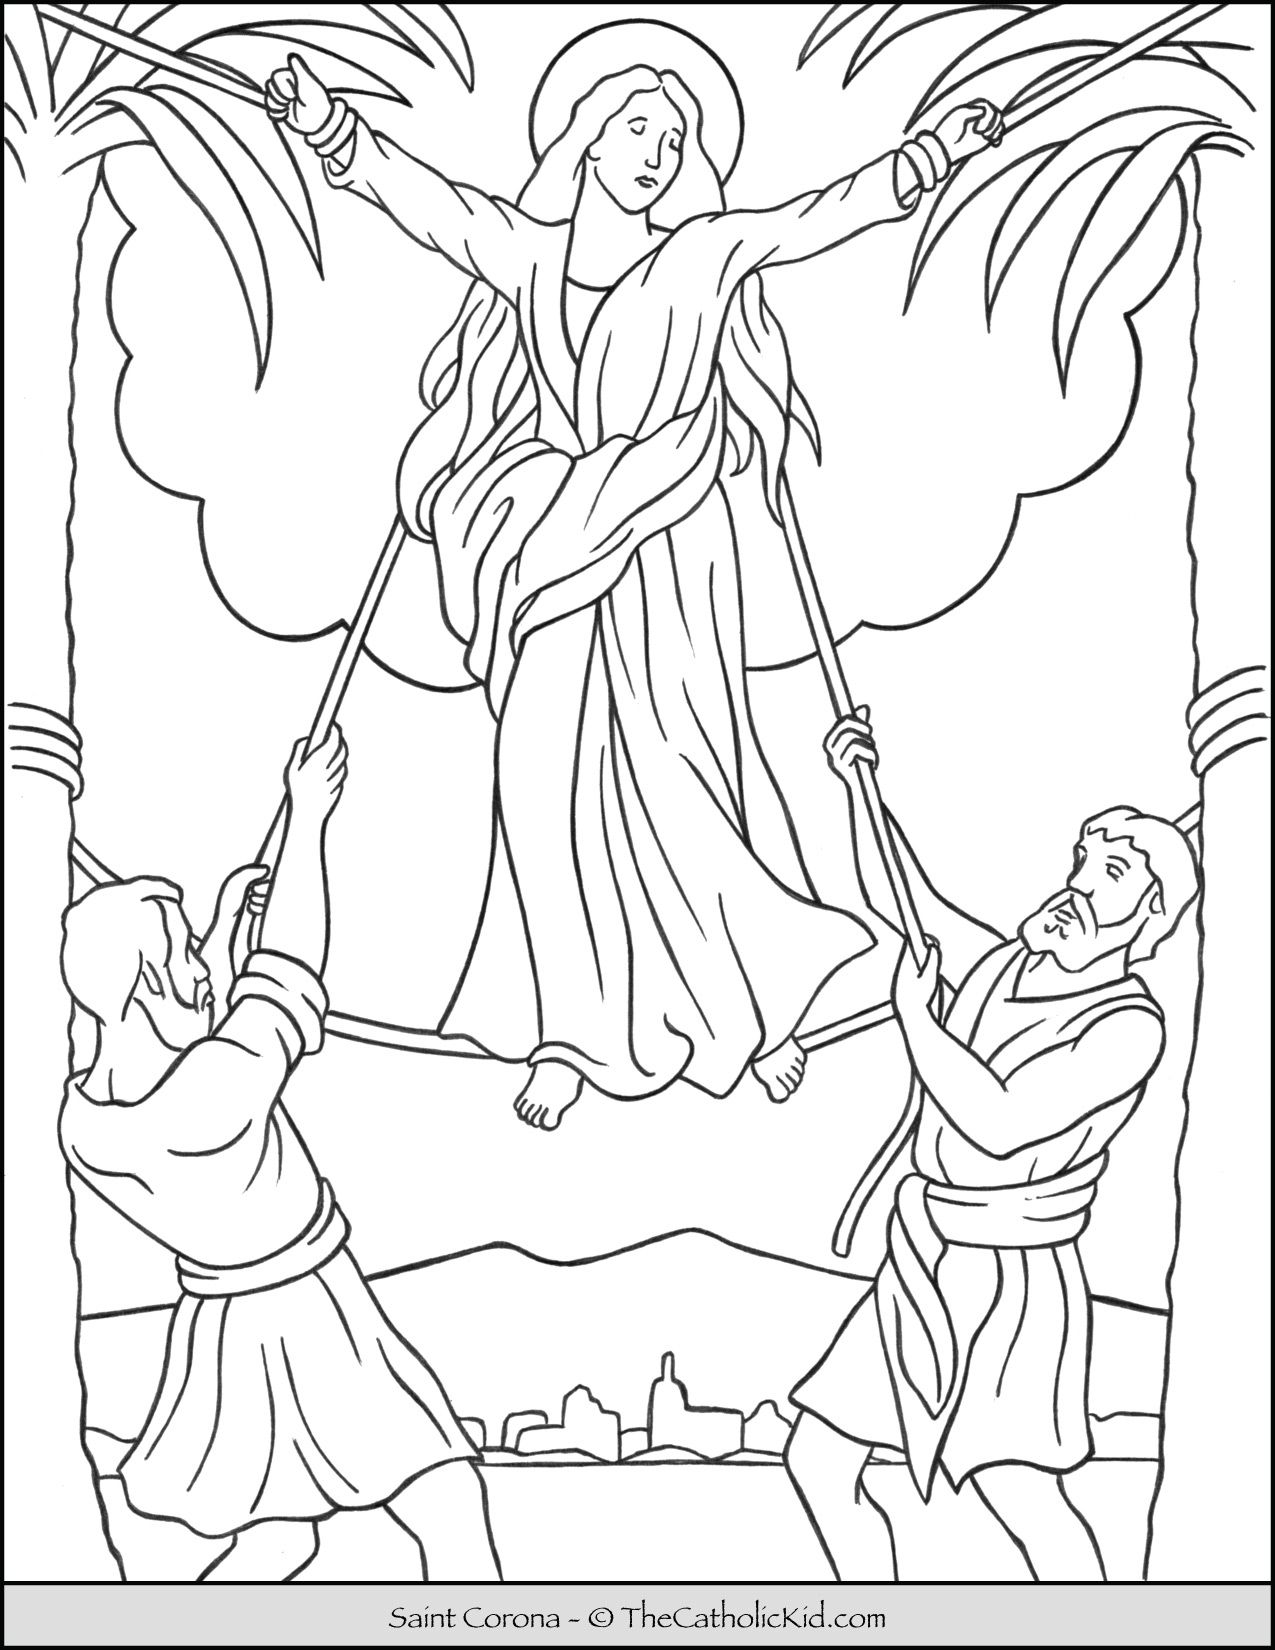 Saint Corona Coloring Page Thecatholickid Com In 2020